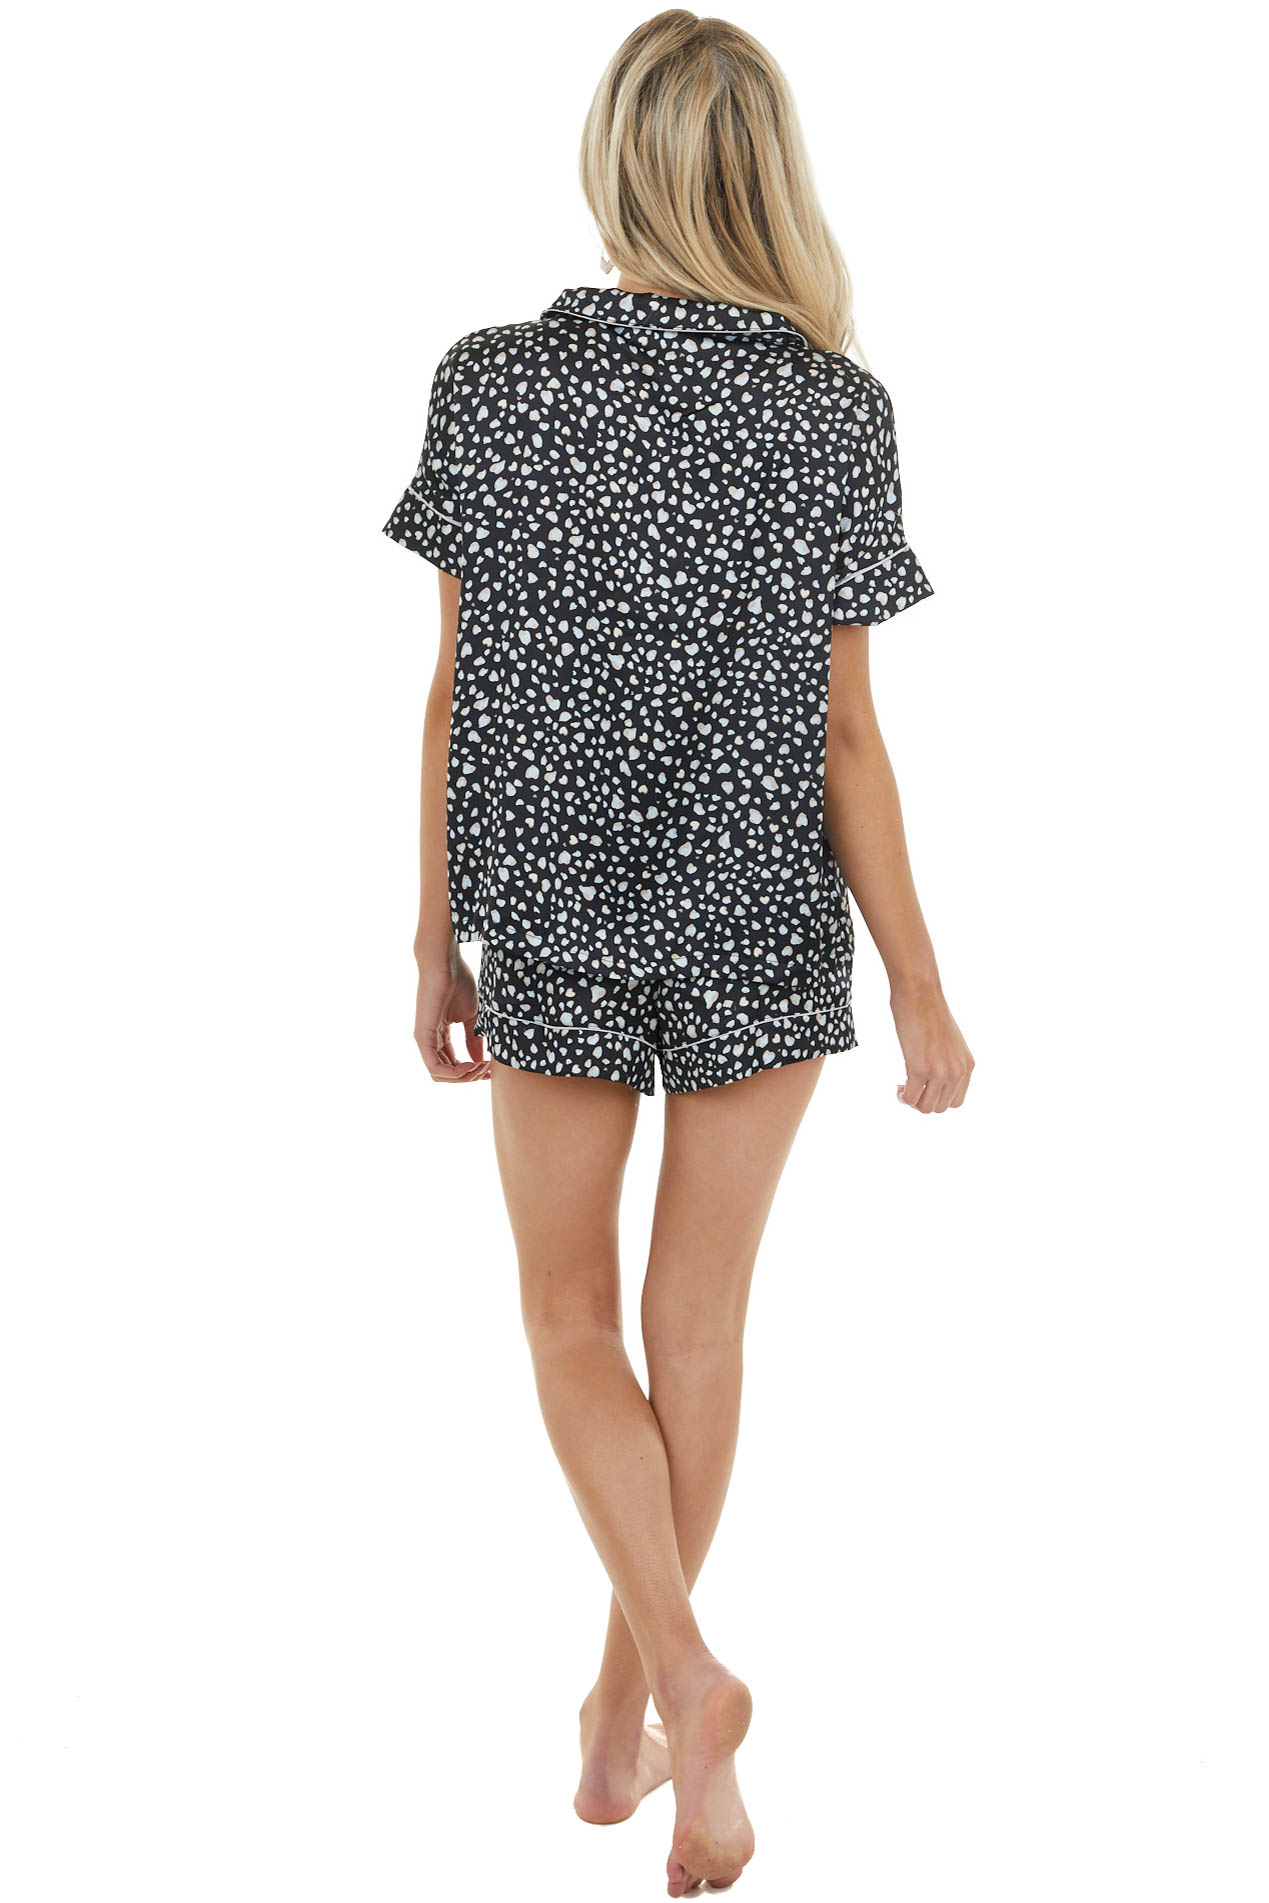 Black Printed Satin Short Sleeve Top and Shorts Set